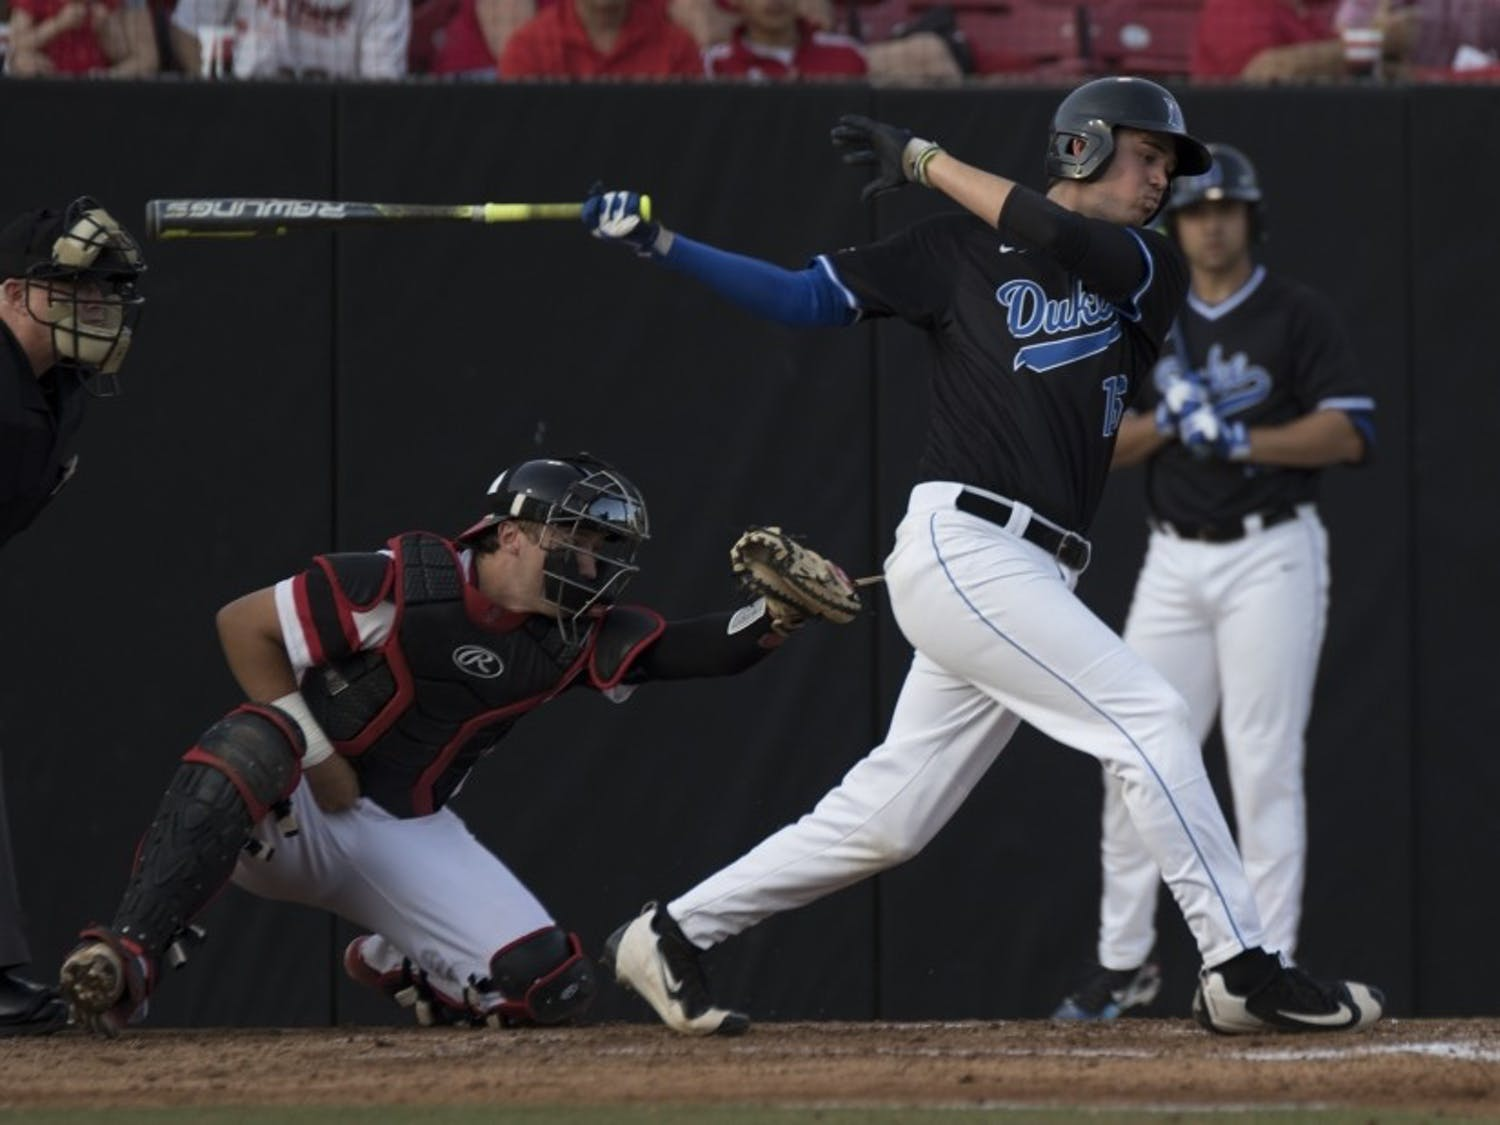 MichaelSmiciklas hit his first career home run Friday to help Duke knock off No. 7 Florida State as the Blue Devils try to earn their first NCAA tournament berth since 1961.